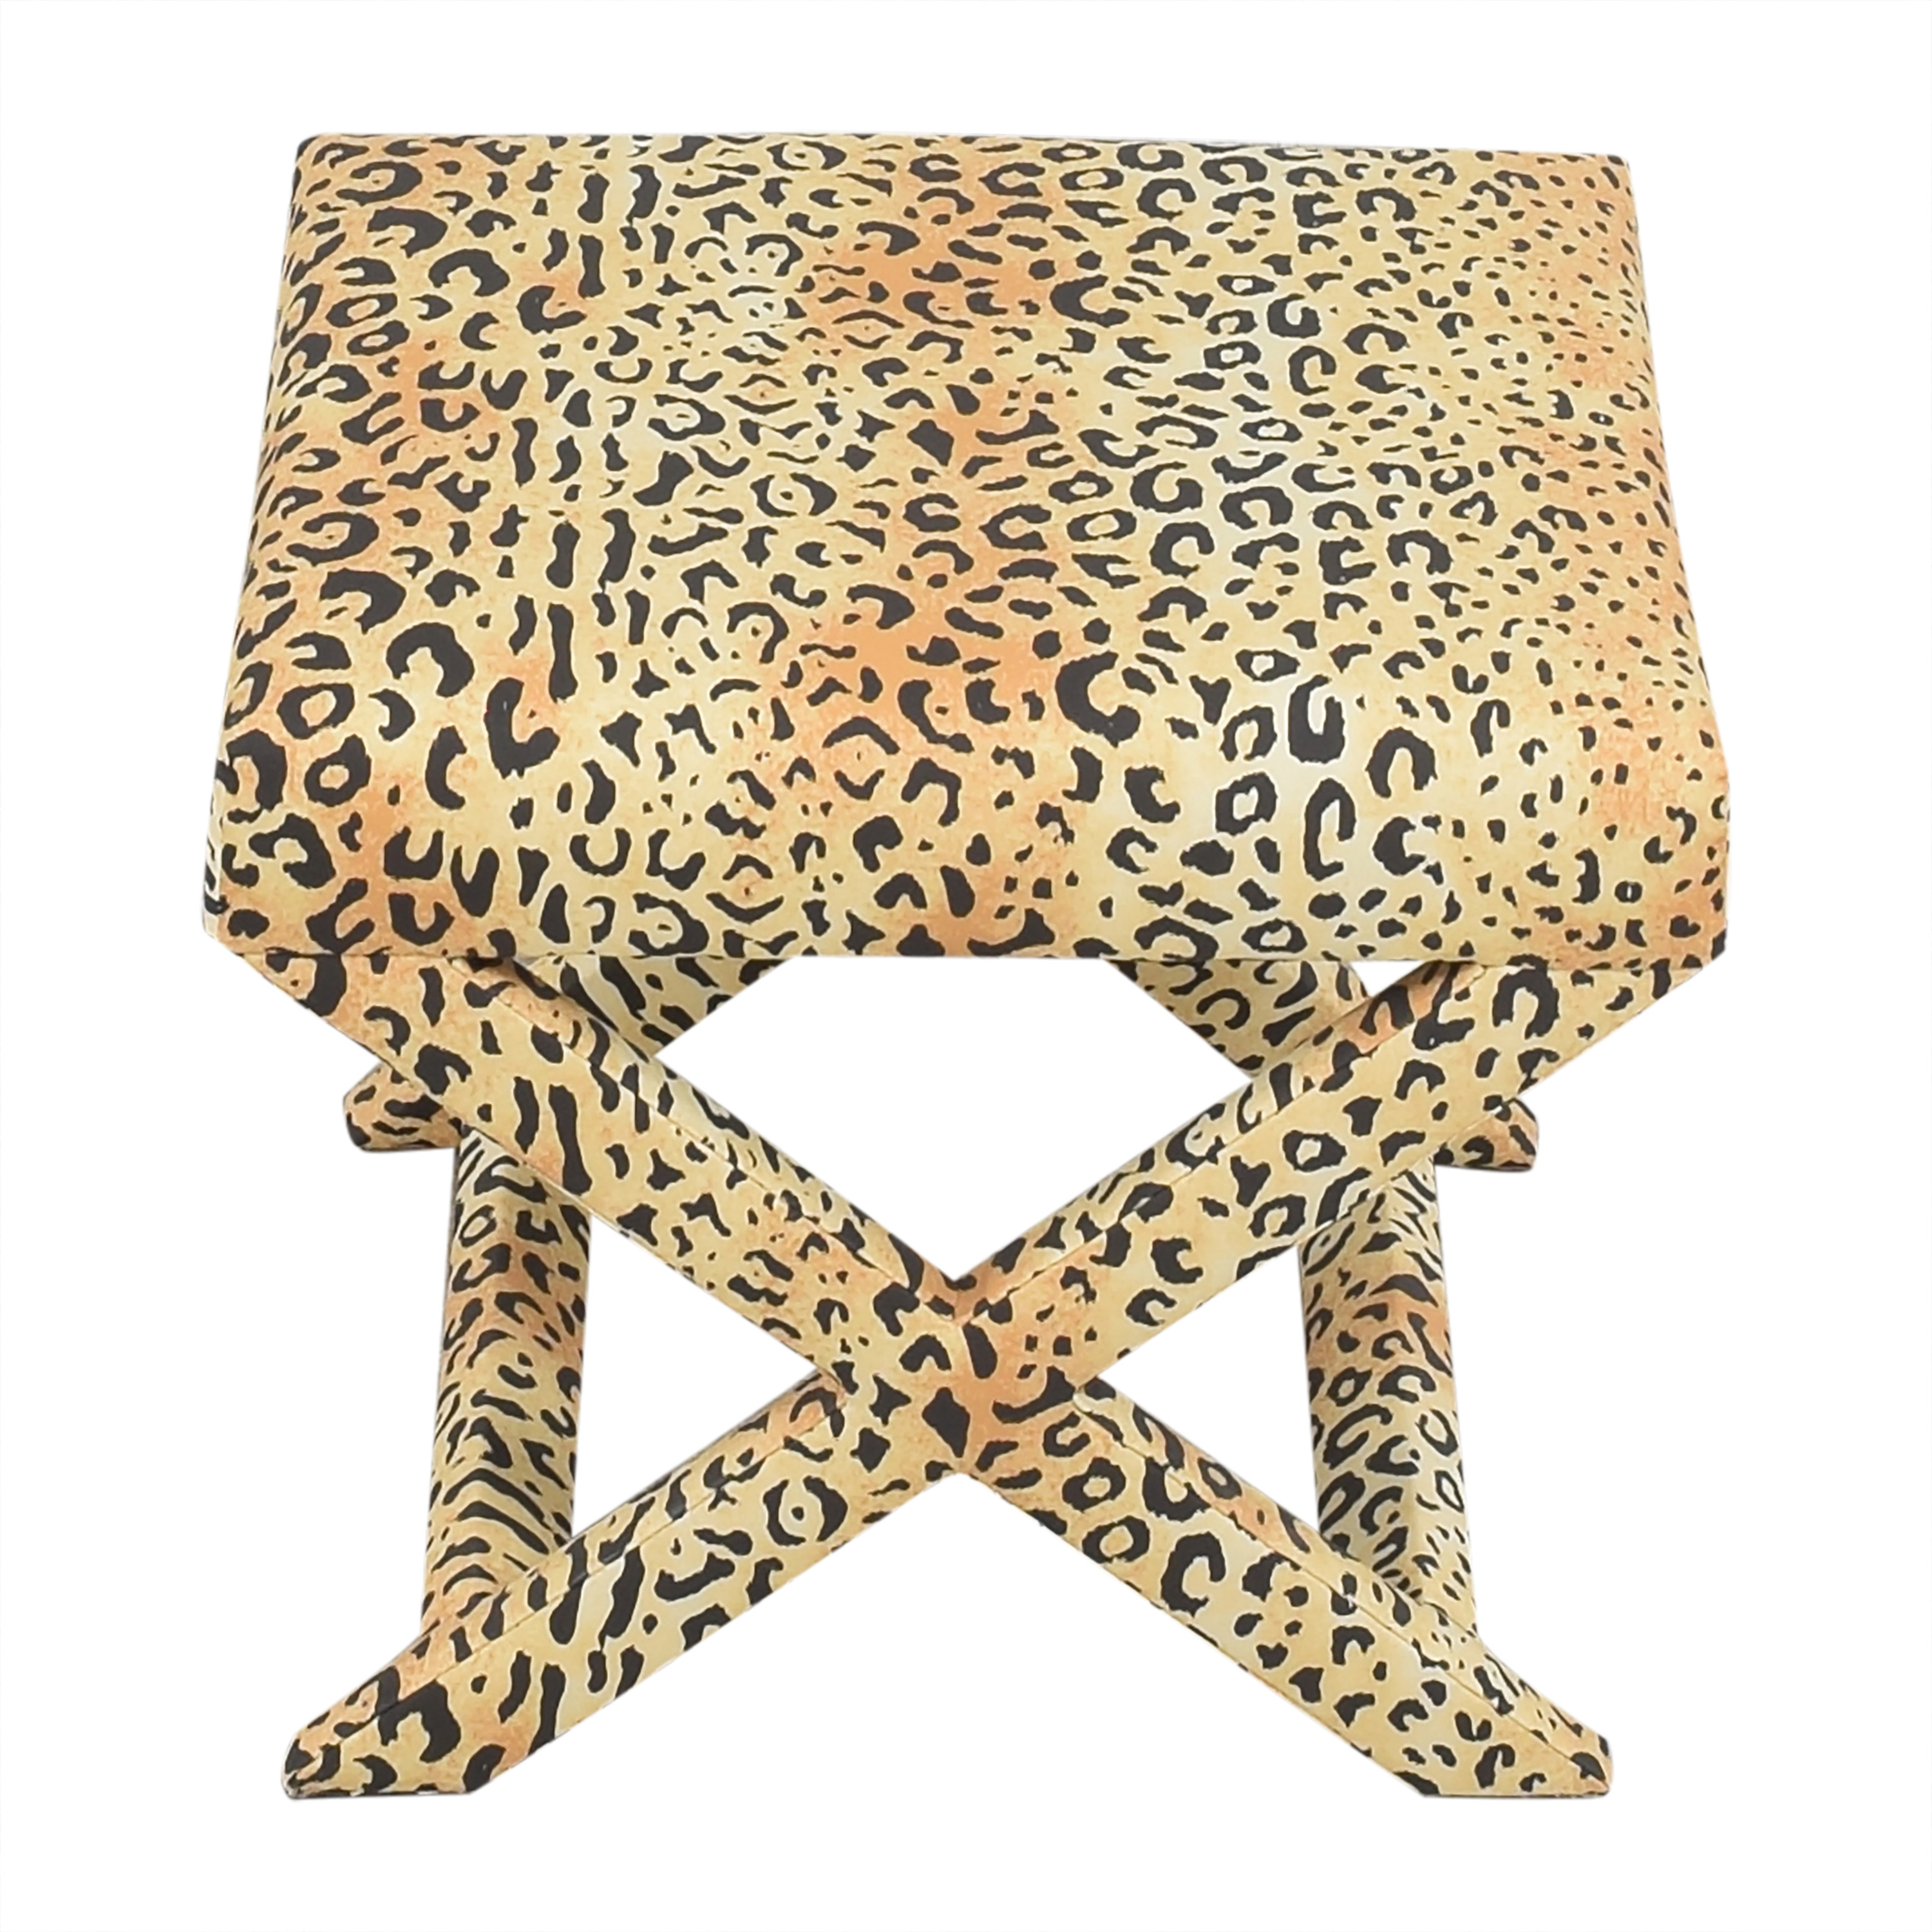 The Inside Leopard X Bench / Chairs